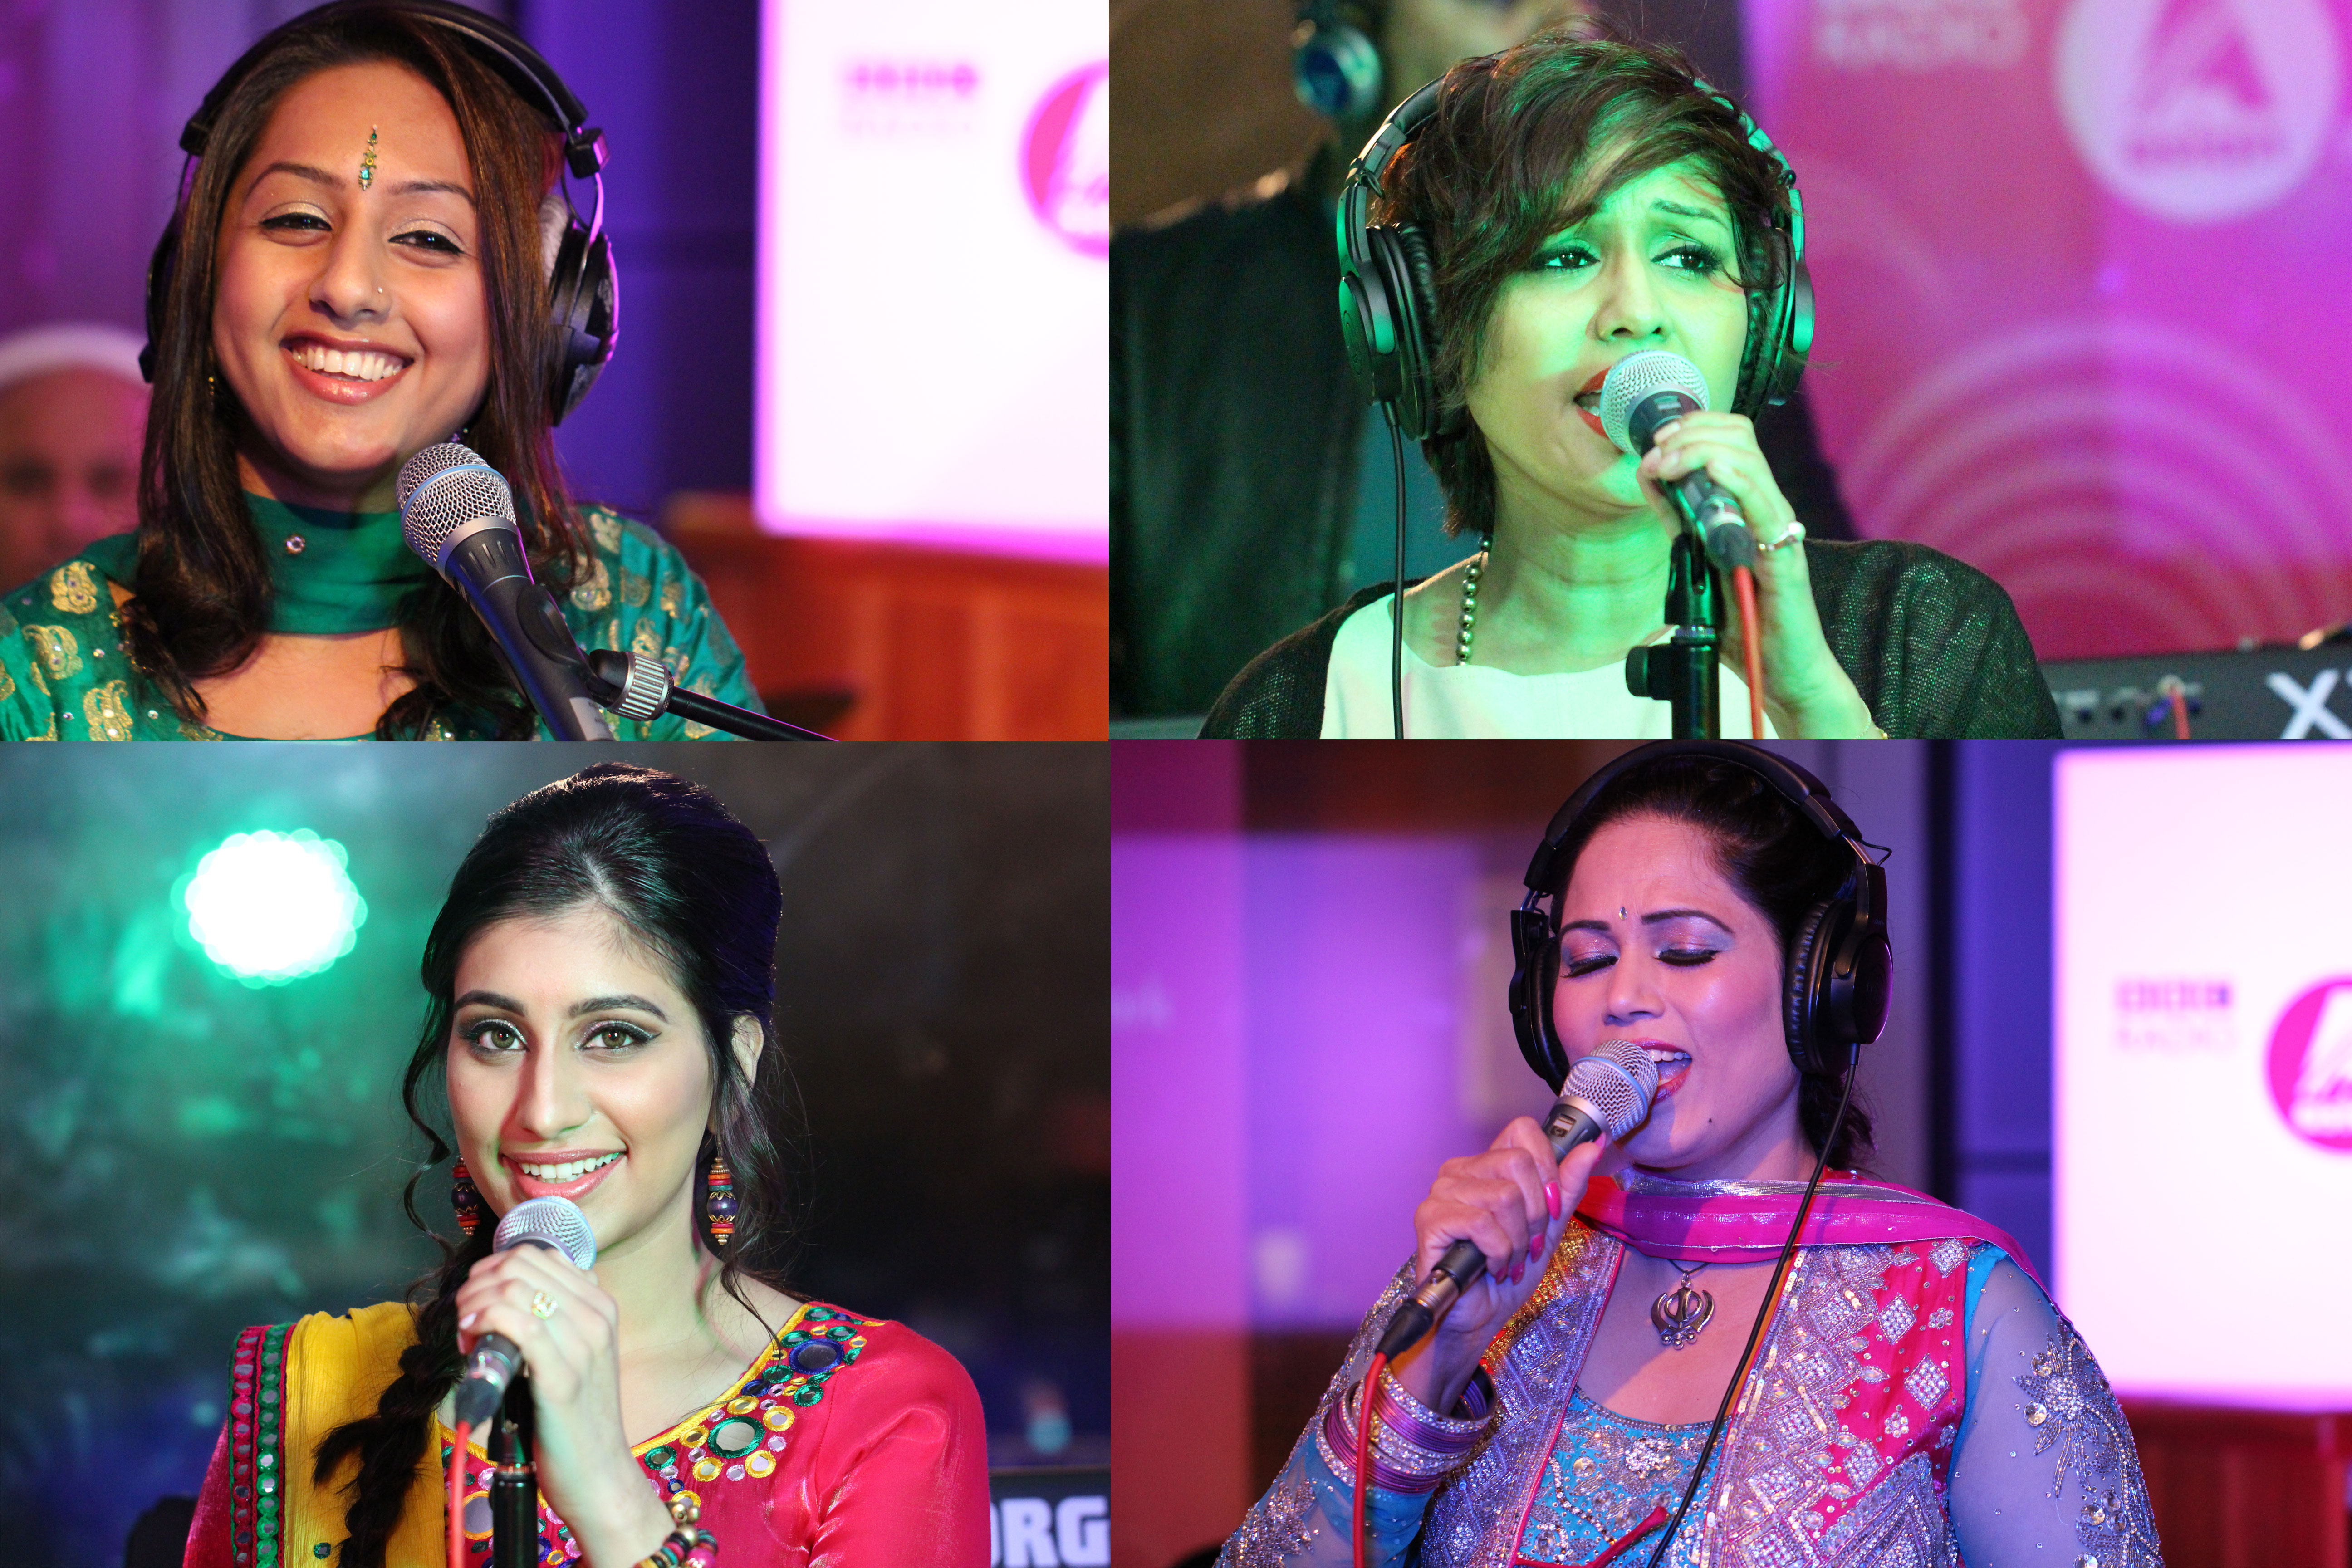 Women in Bhangra BBC Asian Network